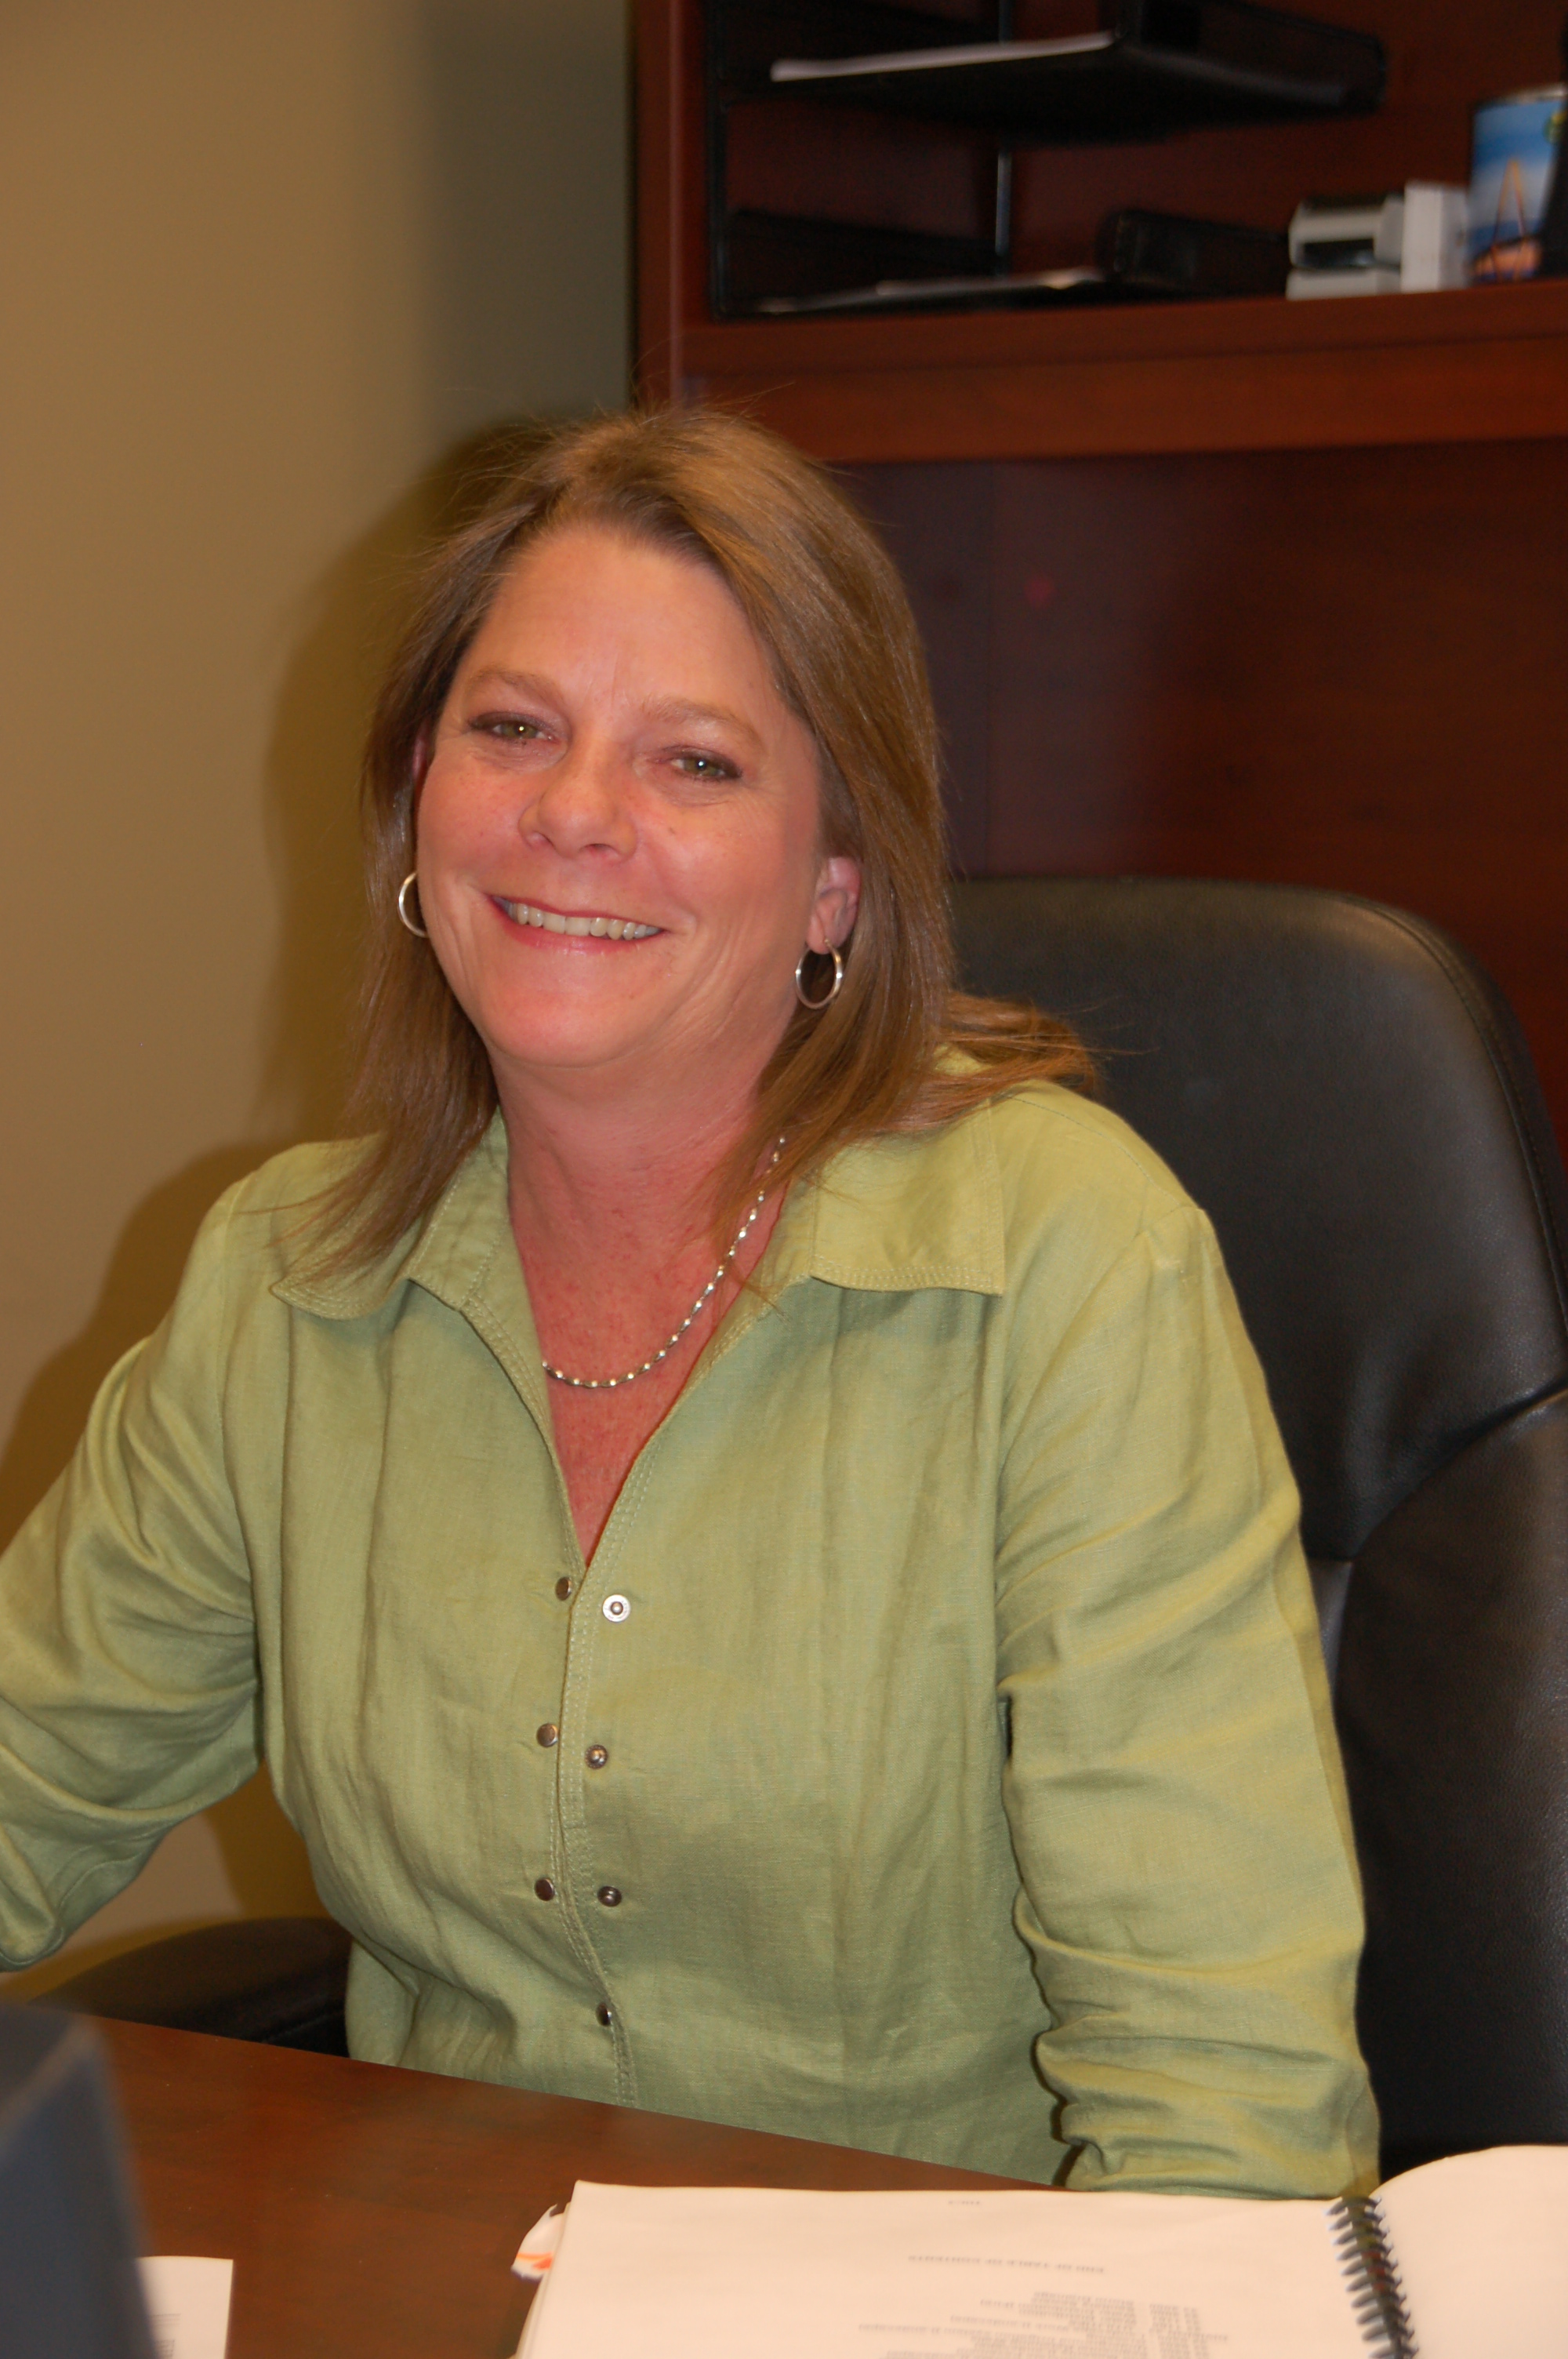 Angie Bowen, Administrative Coordinator for EBS, Exterior Building Solutions